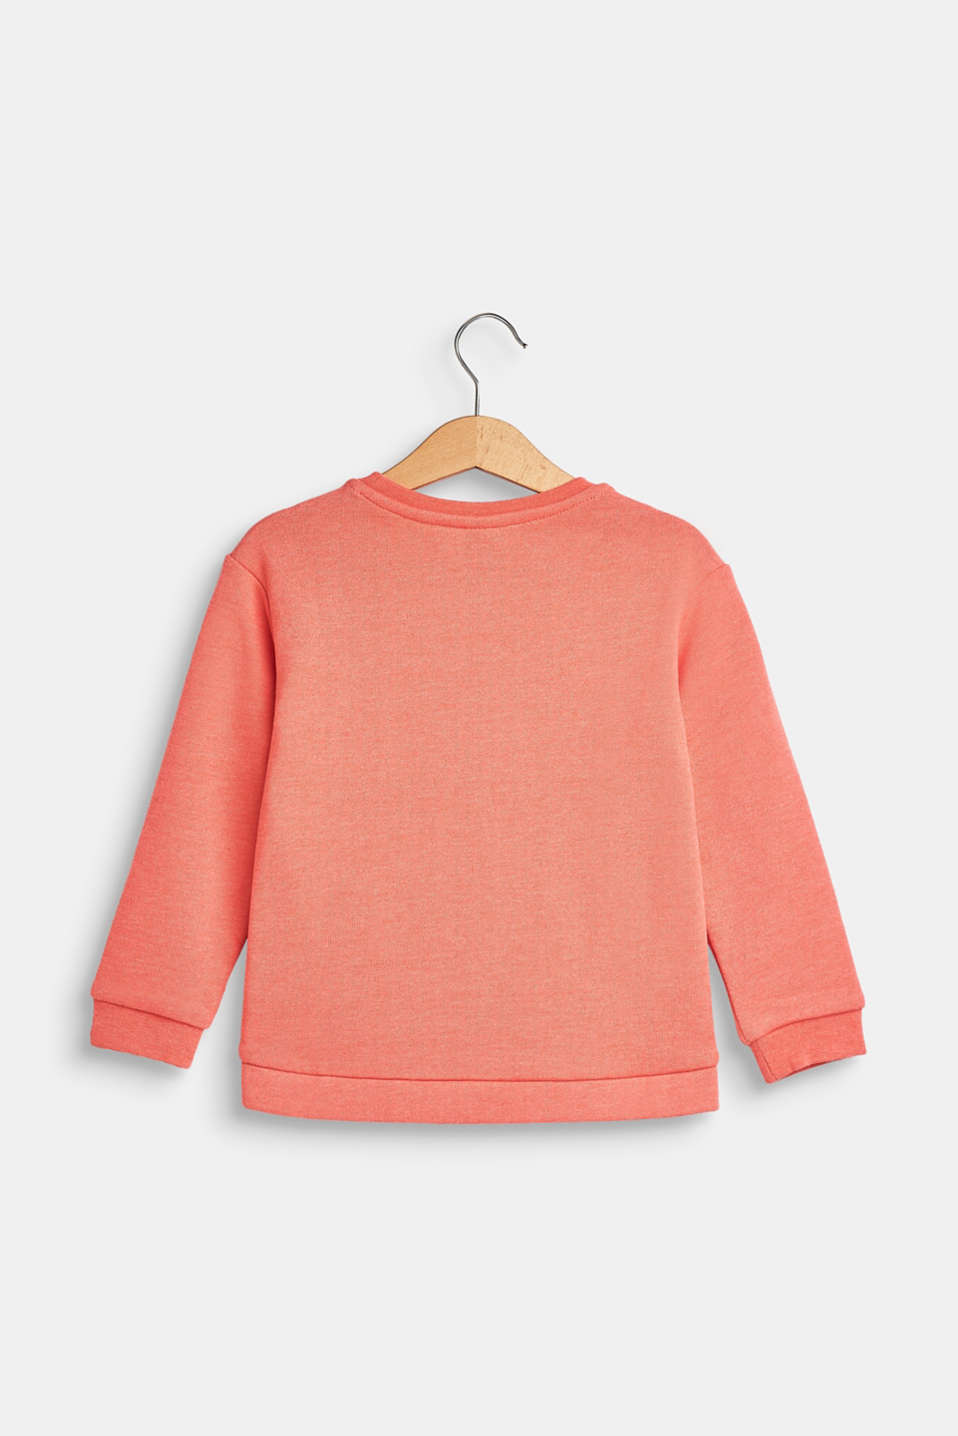 Statement print sweatshirt, CORAL, detail image number 1